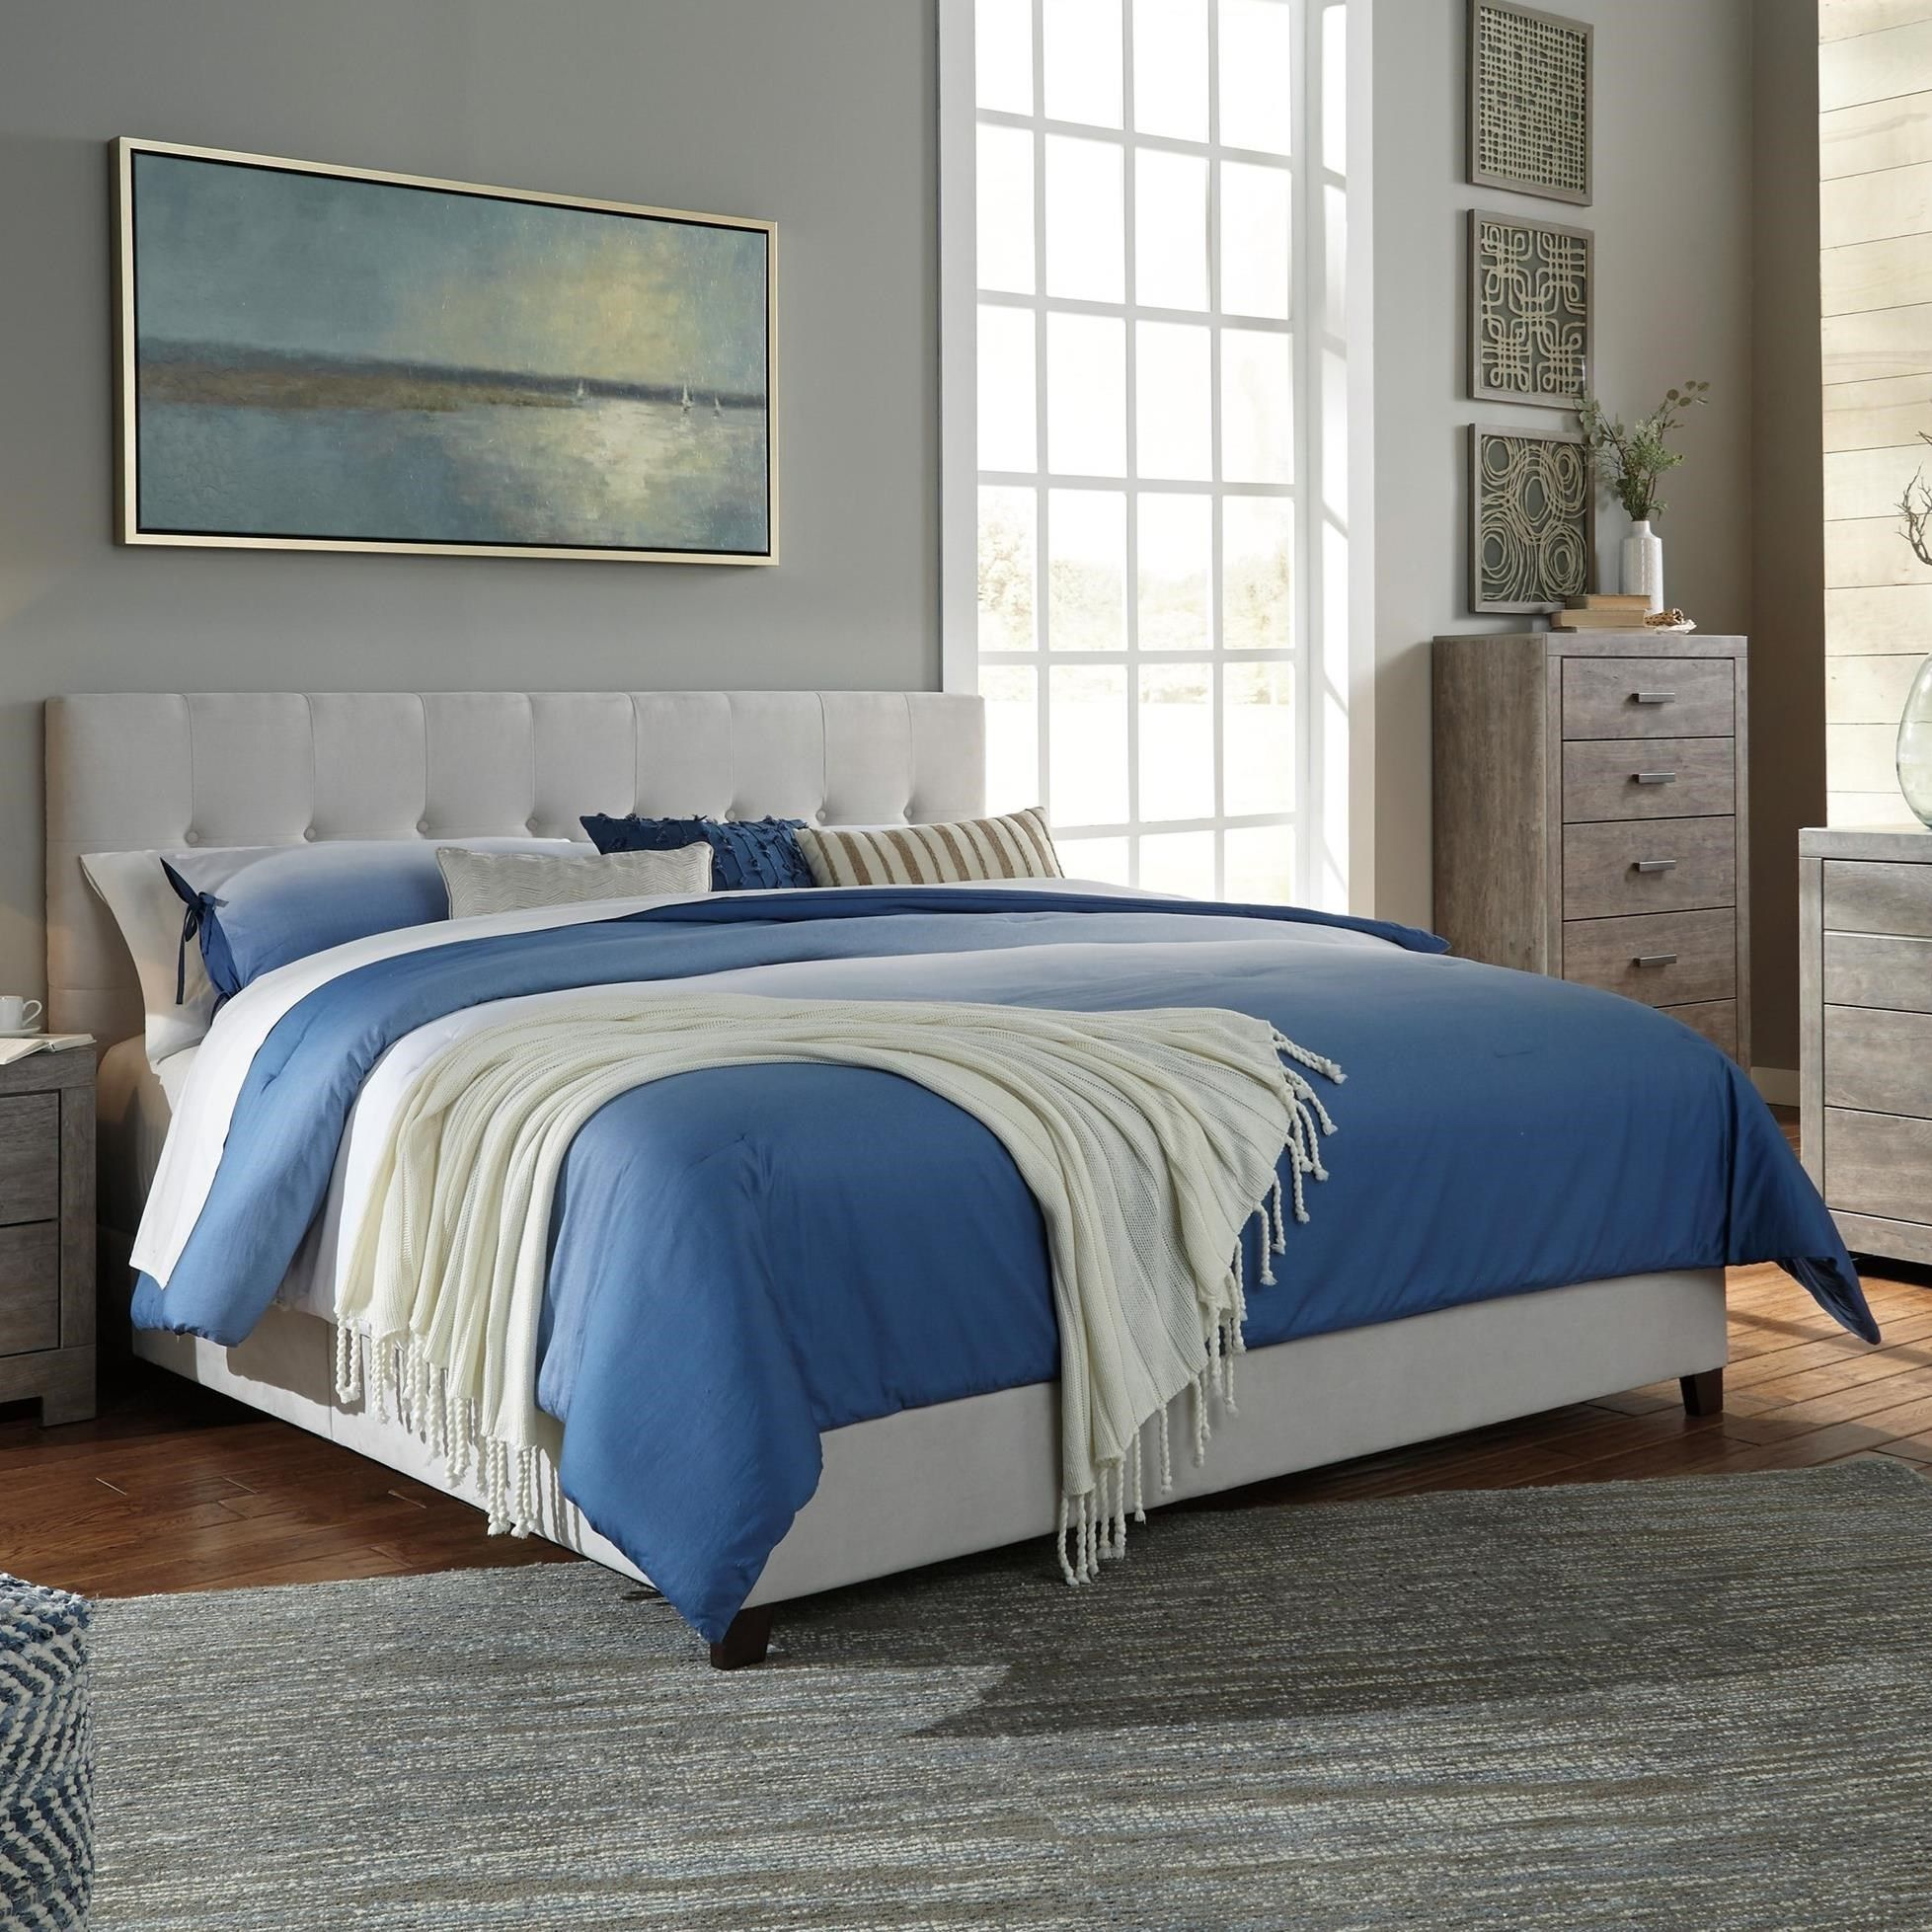 Dolante King Upholstered Bed By Signature Design By Ashley